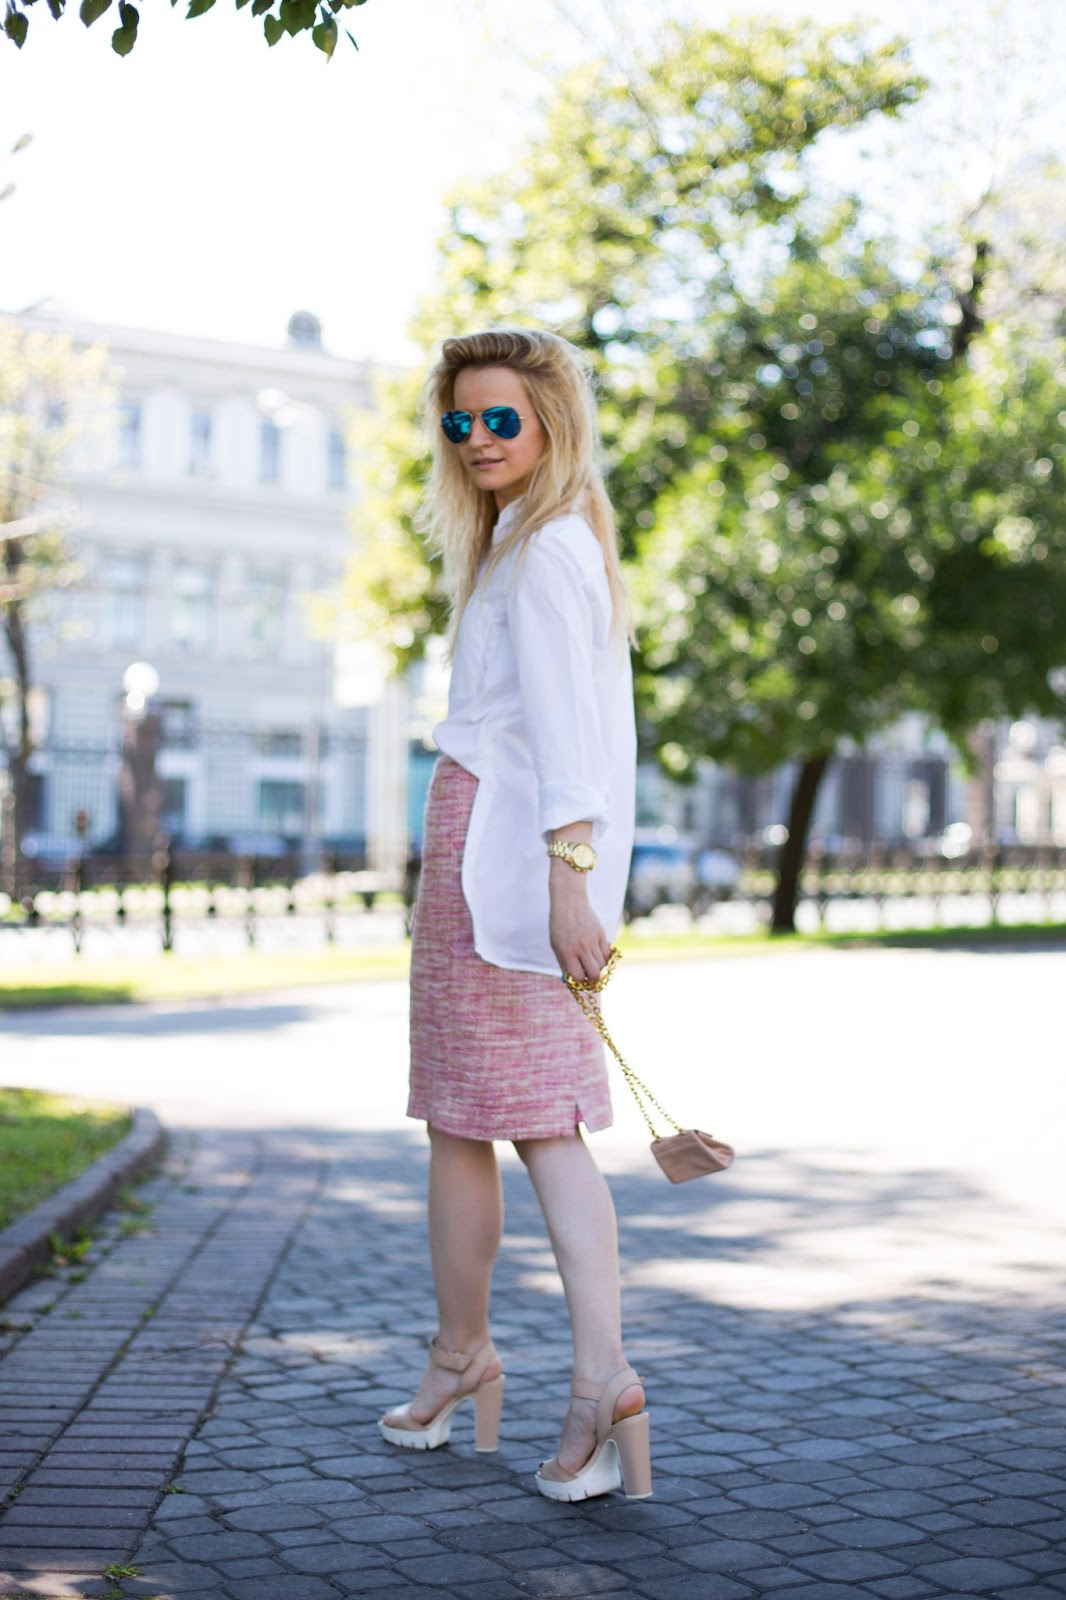 russian fashion bloggers, street style 2015 blog, Irina Pavlova blog, модные луки лето 2015 фото